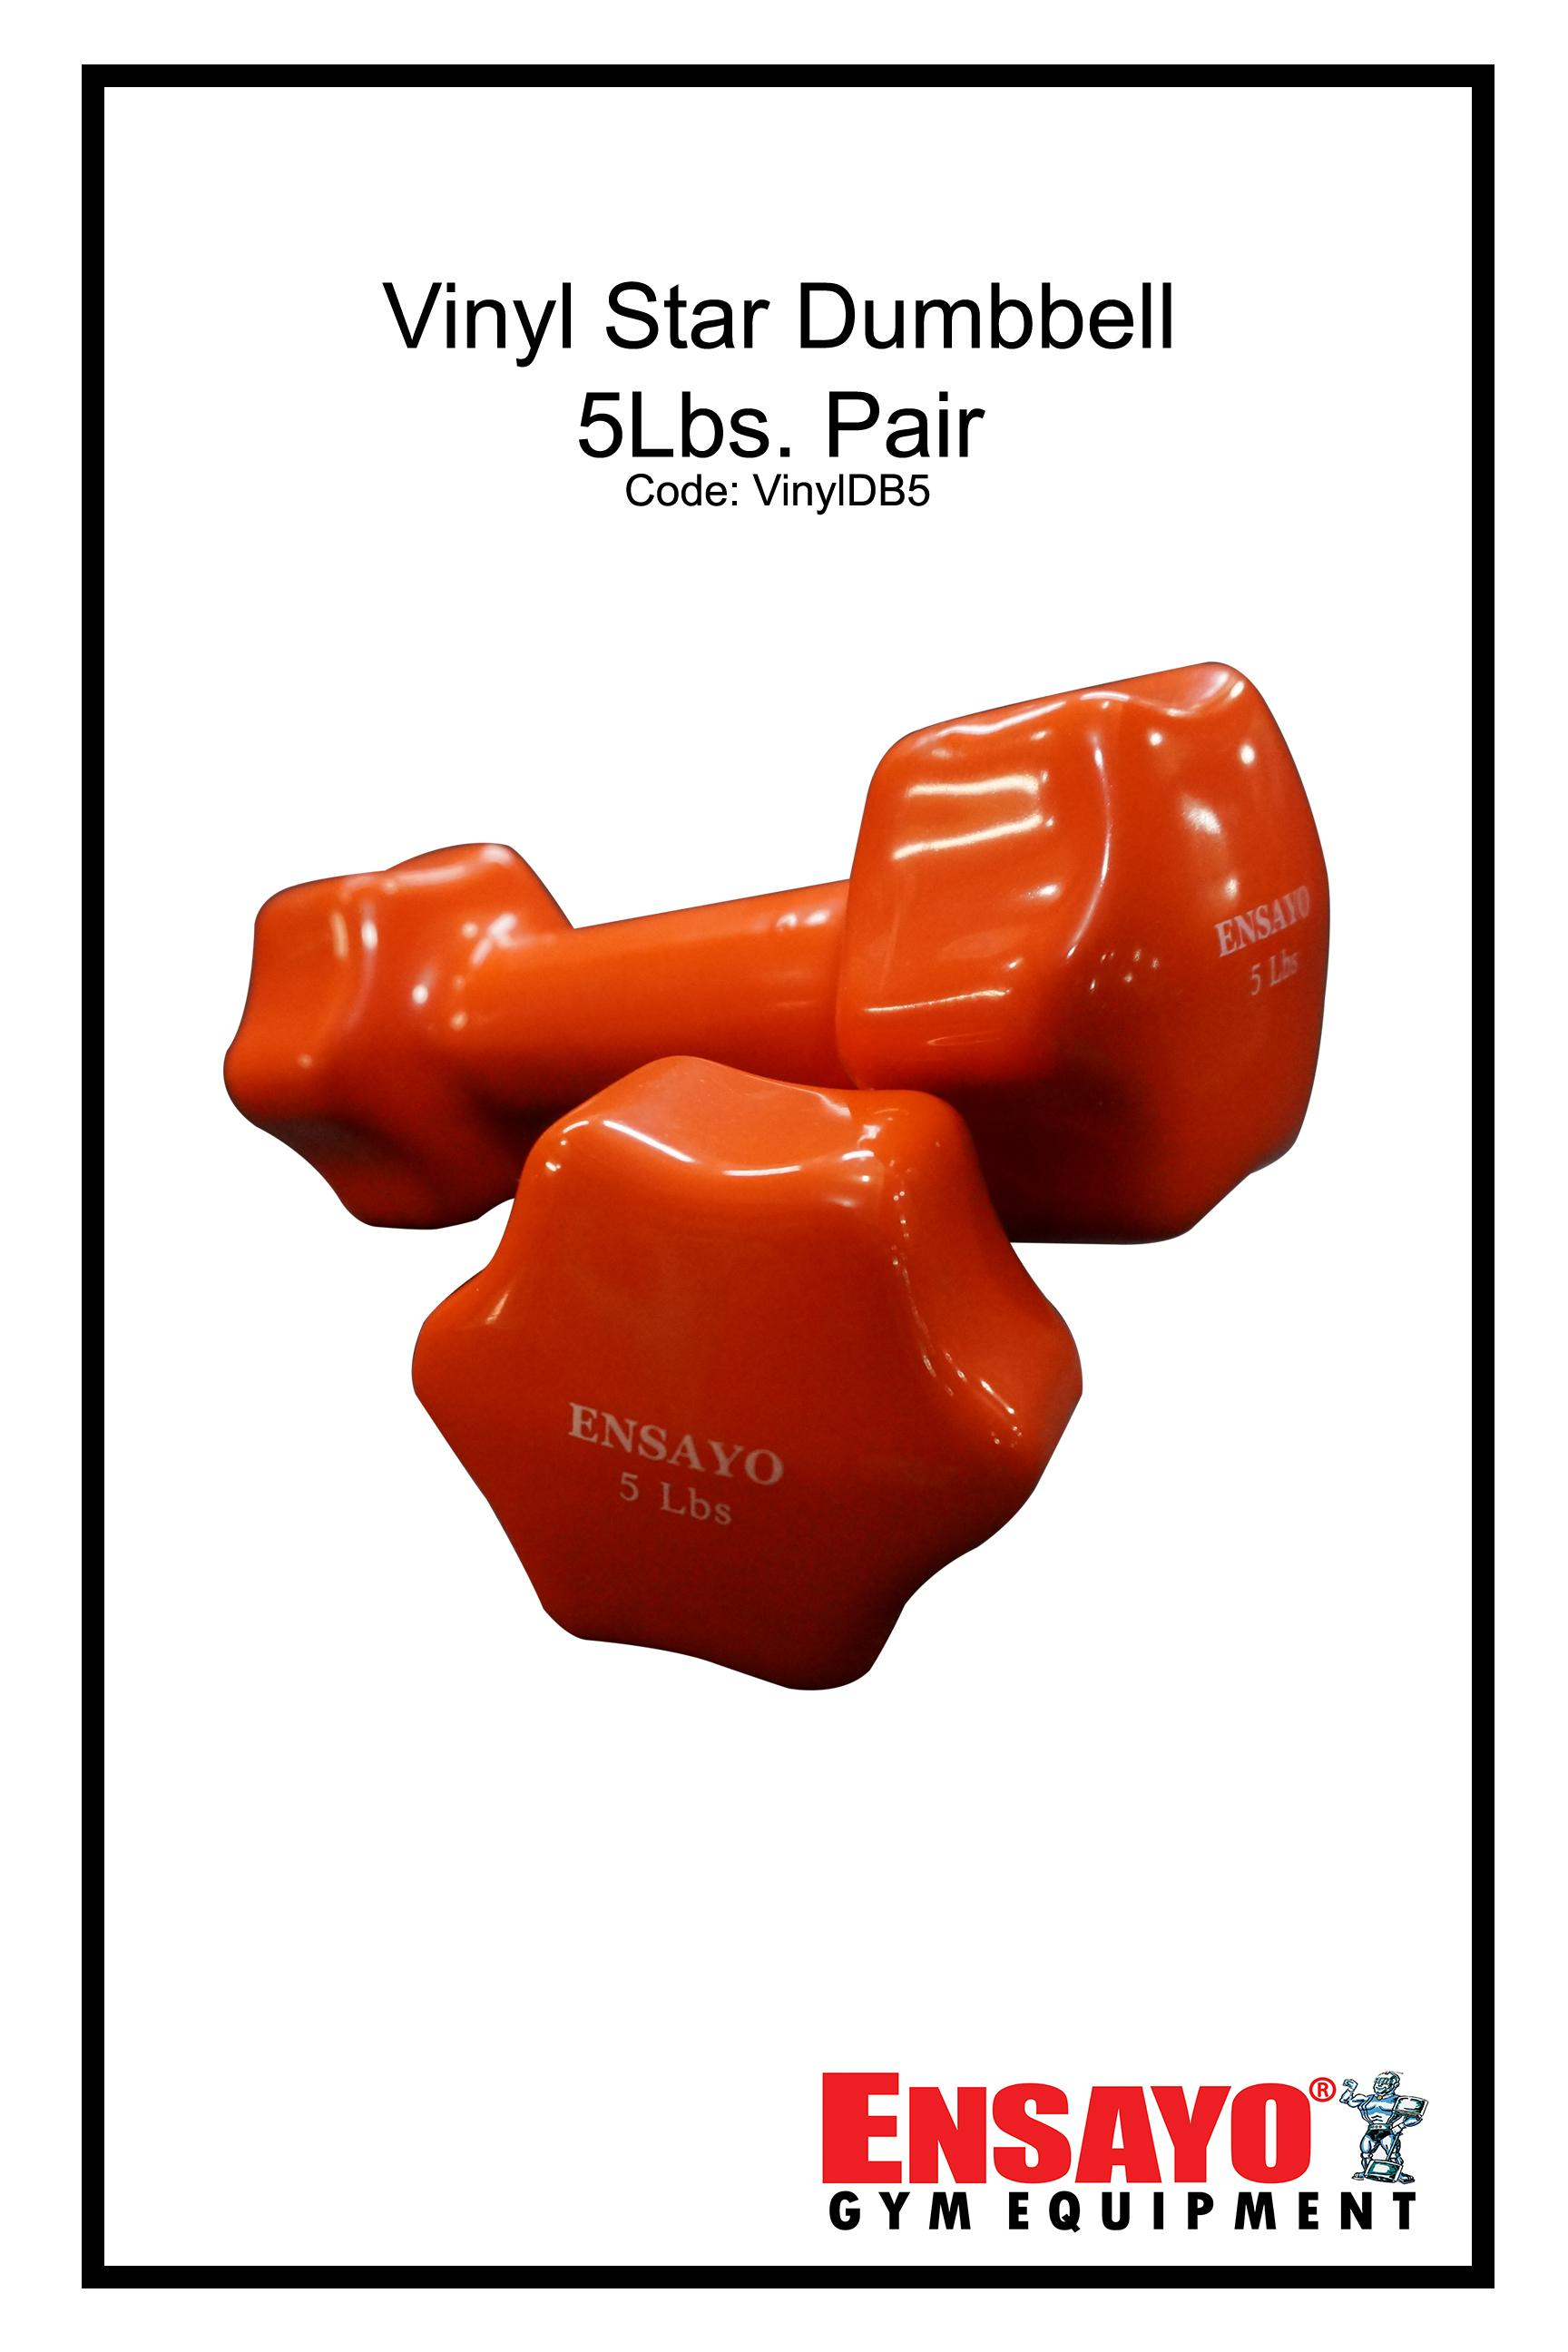 ab94a43b0aa Ensayo 5Lbs. Vinyl Star Dumbbells- Home Commercial gym use (Exercise Workout